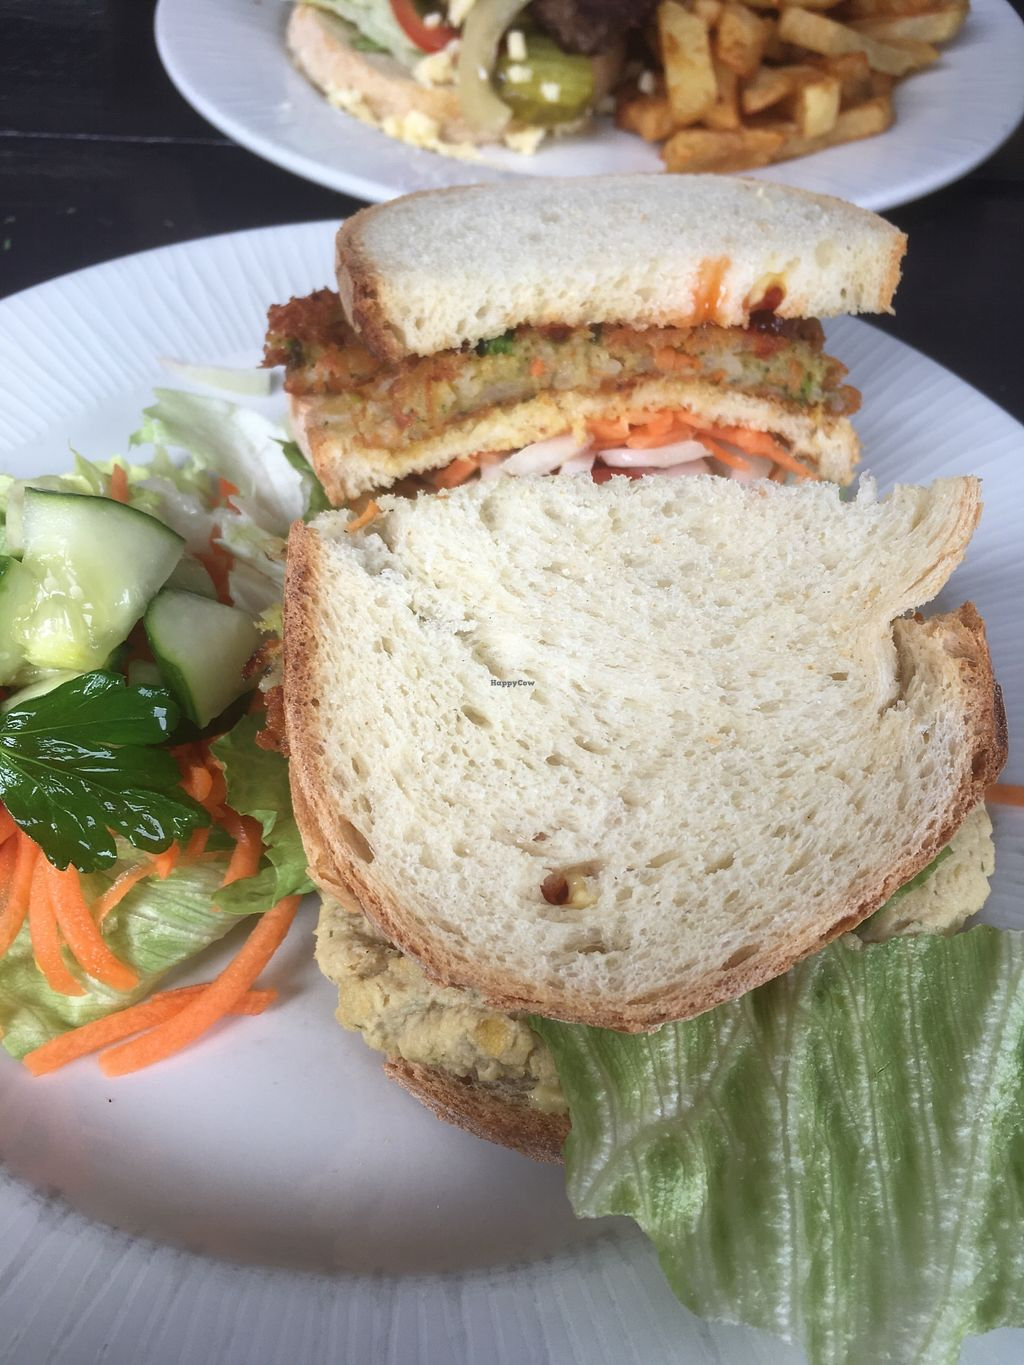 """Photo of Alpine Coffee Shop and Gallery  by <a href=""""/members/profile/MariRoberts"""">MariRoberts</a> <br/>Vegan club sandwich  Delicious, but way too much hummus which didn't taste very nice <br/> April 16, 2018  - <a href='/contact/abuse/image/18612/386654'>Report</a>"""